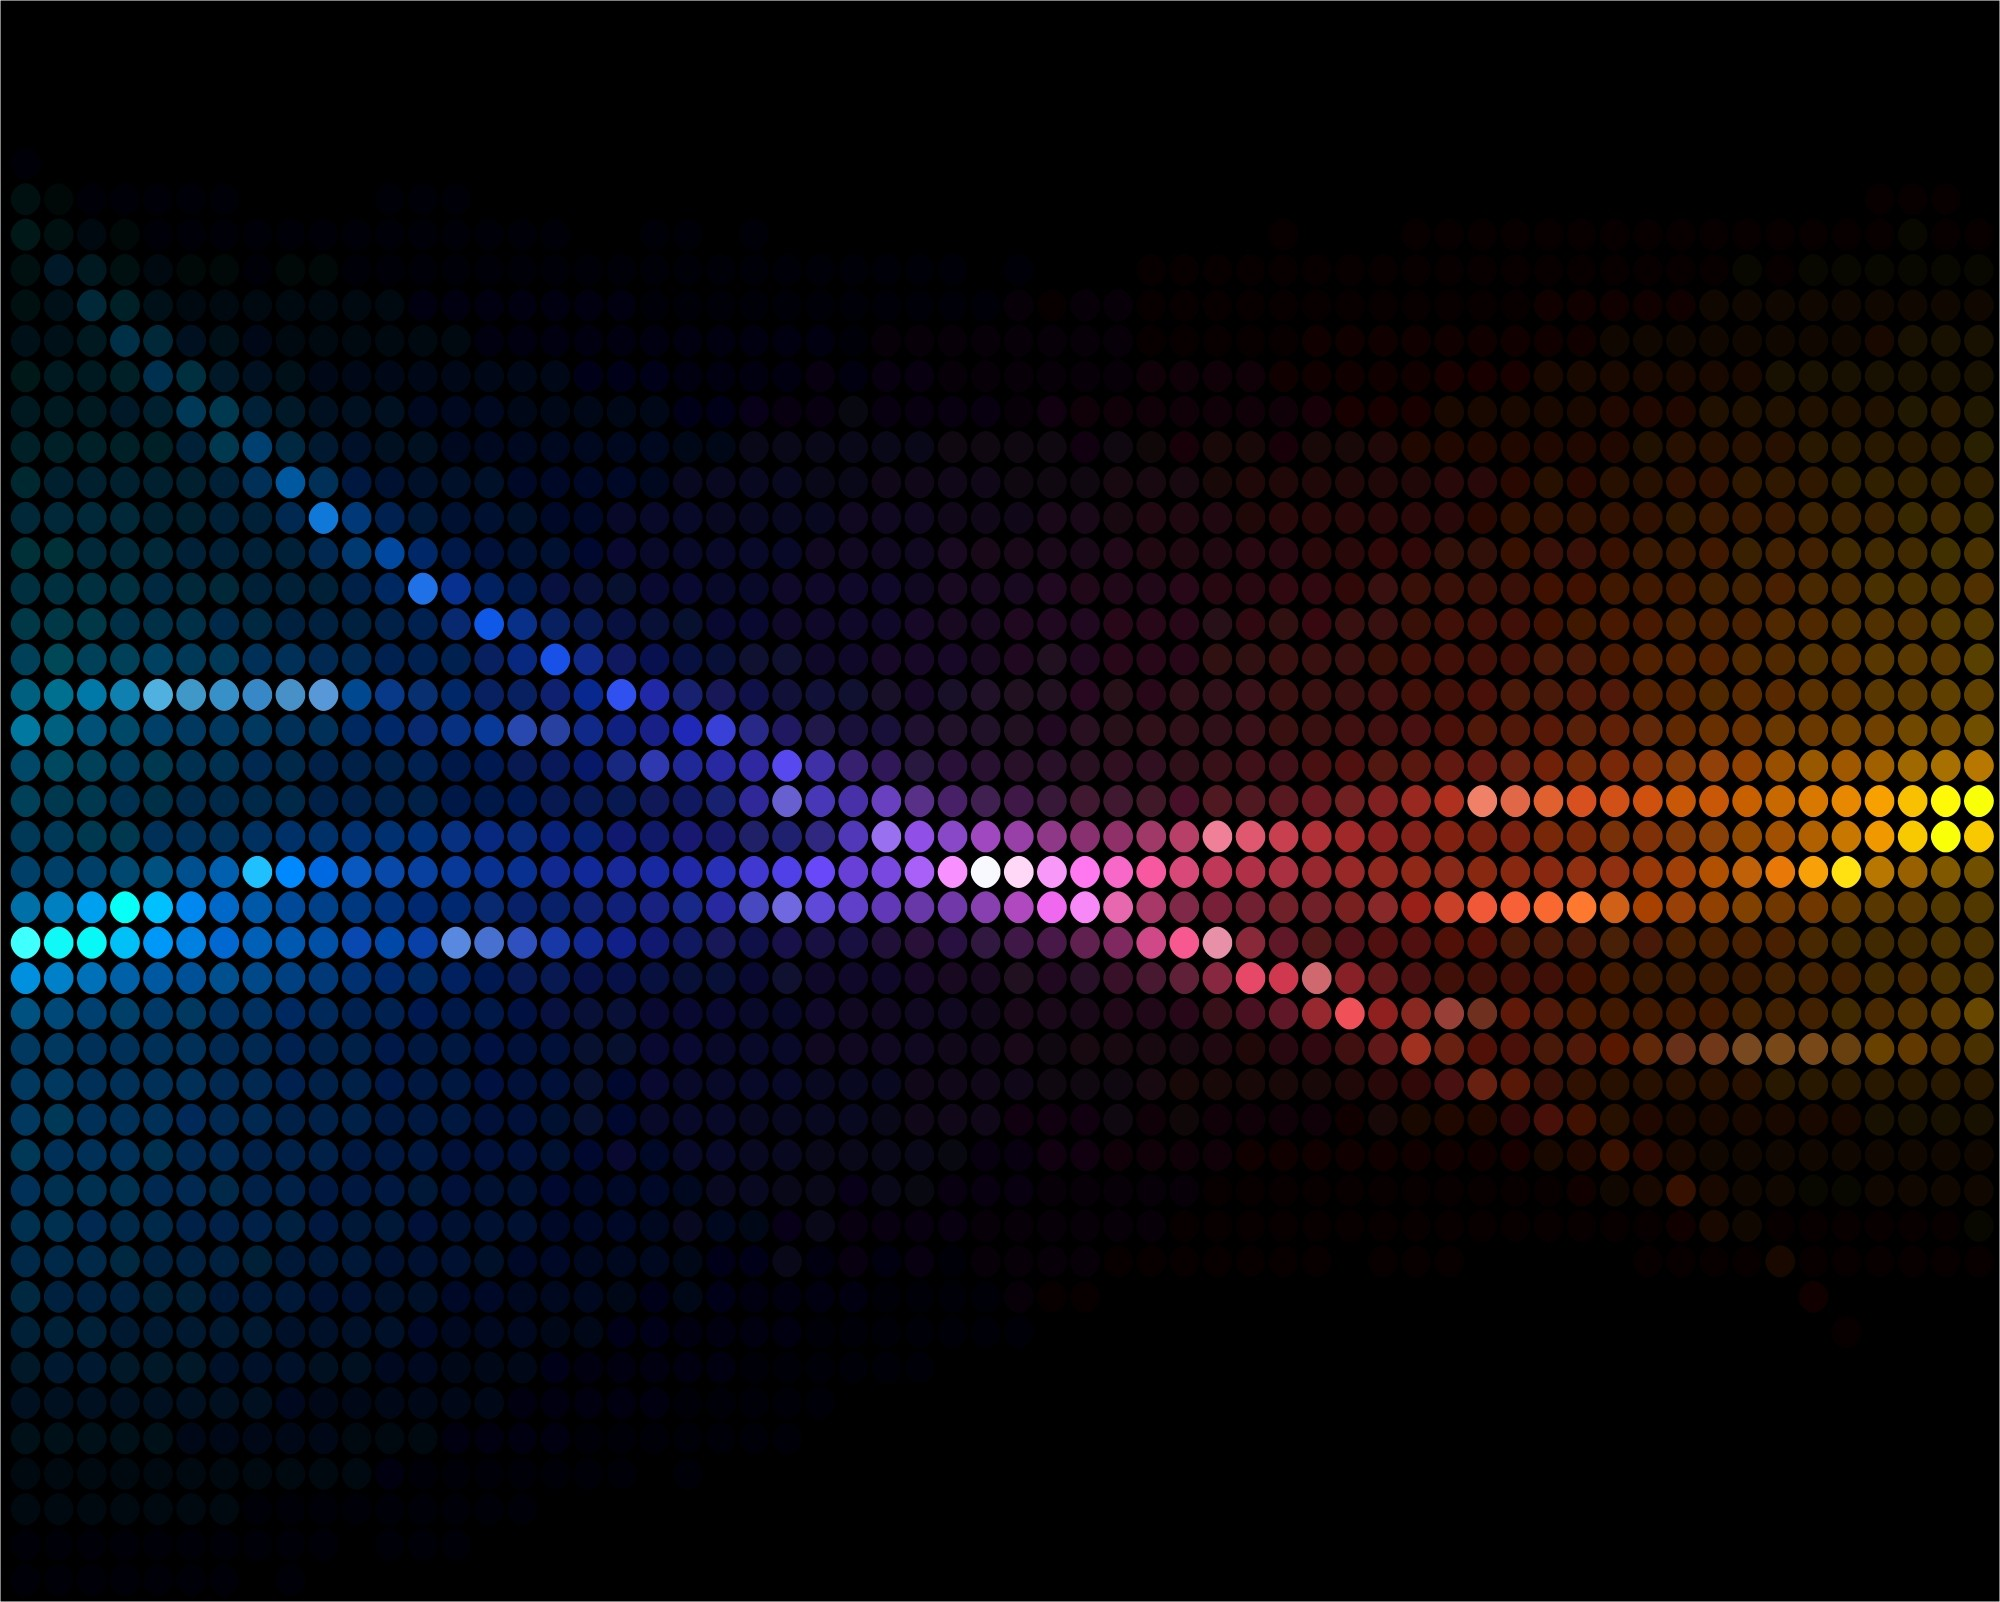 Neon Color Backgrounds Images | TheCelebrityPix